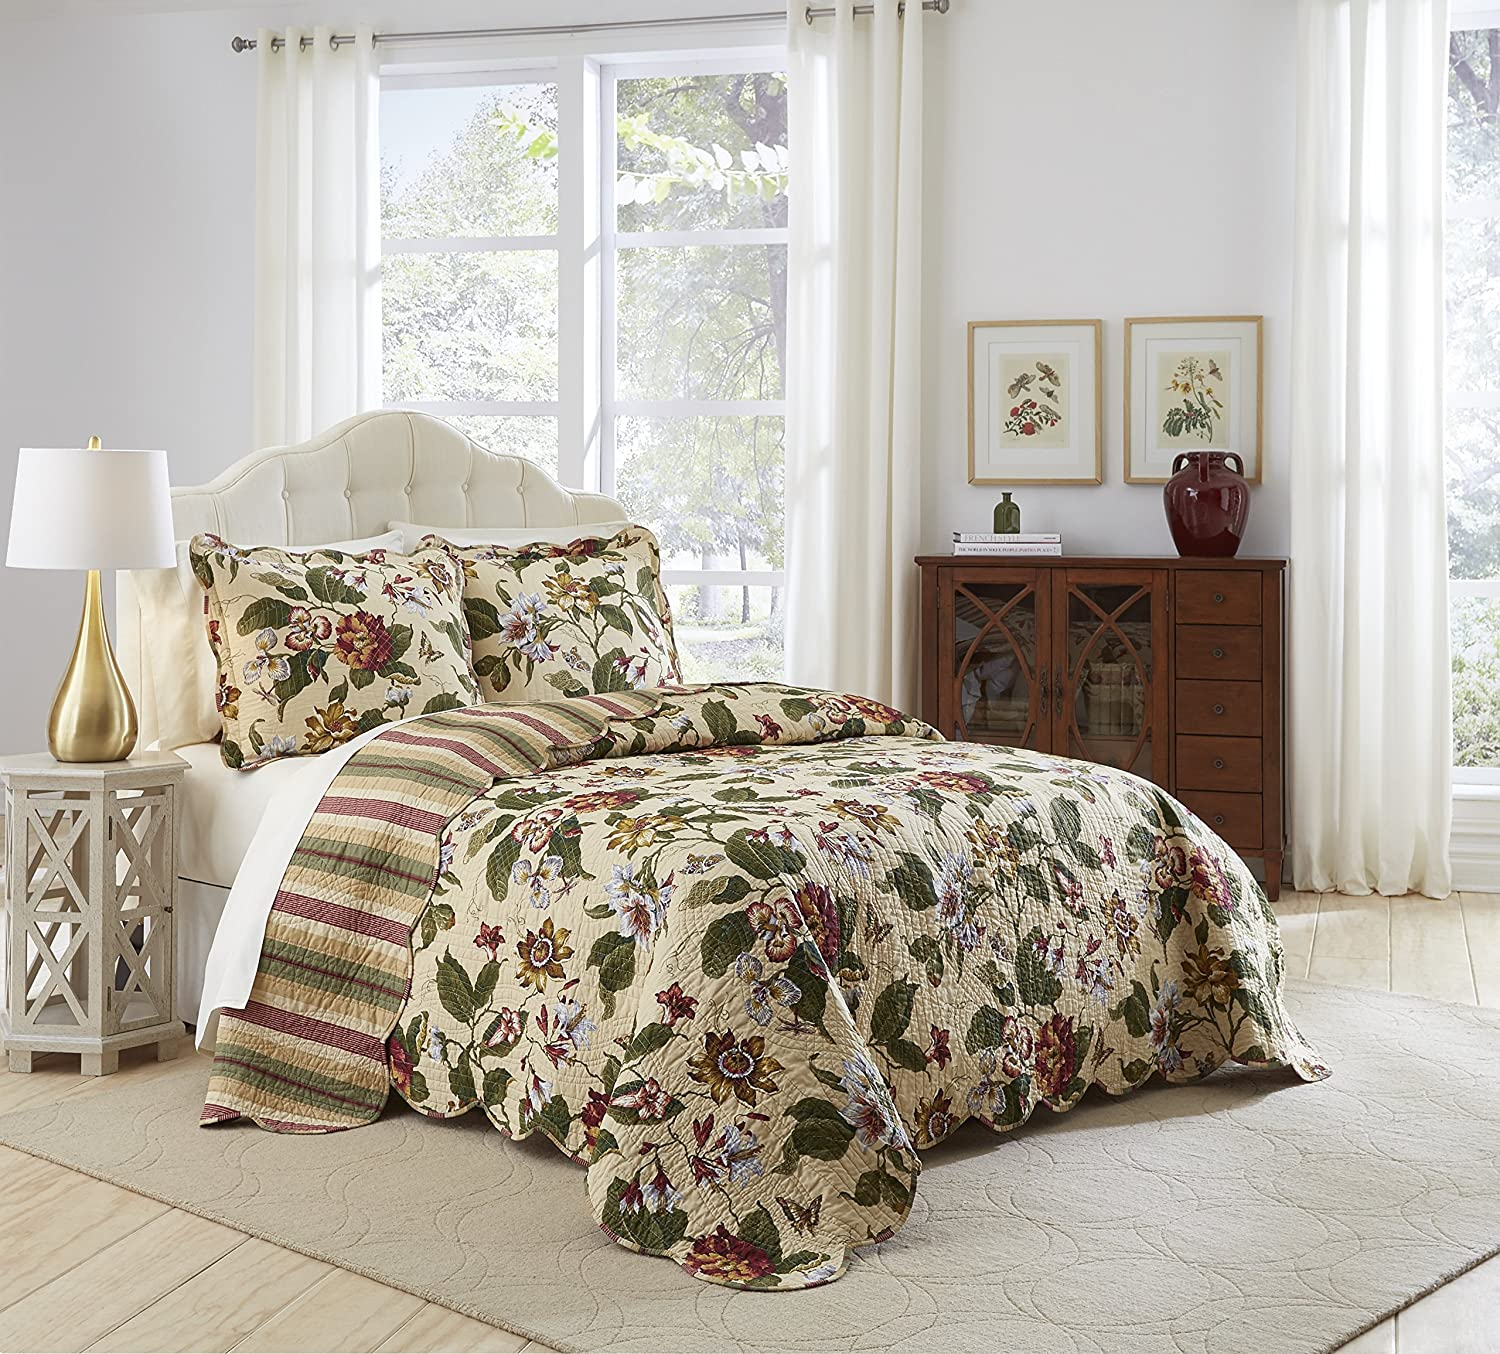 Waverly Laurel Springs Bedspread Collection, King/Cal King